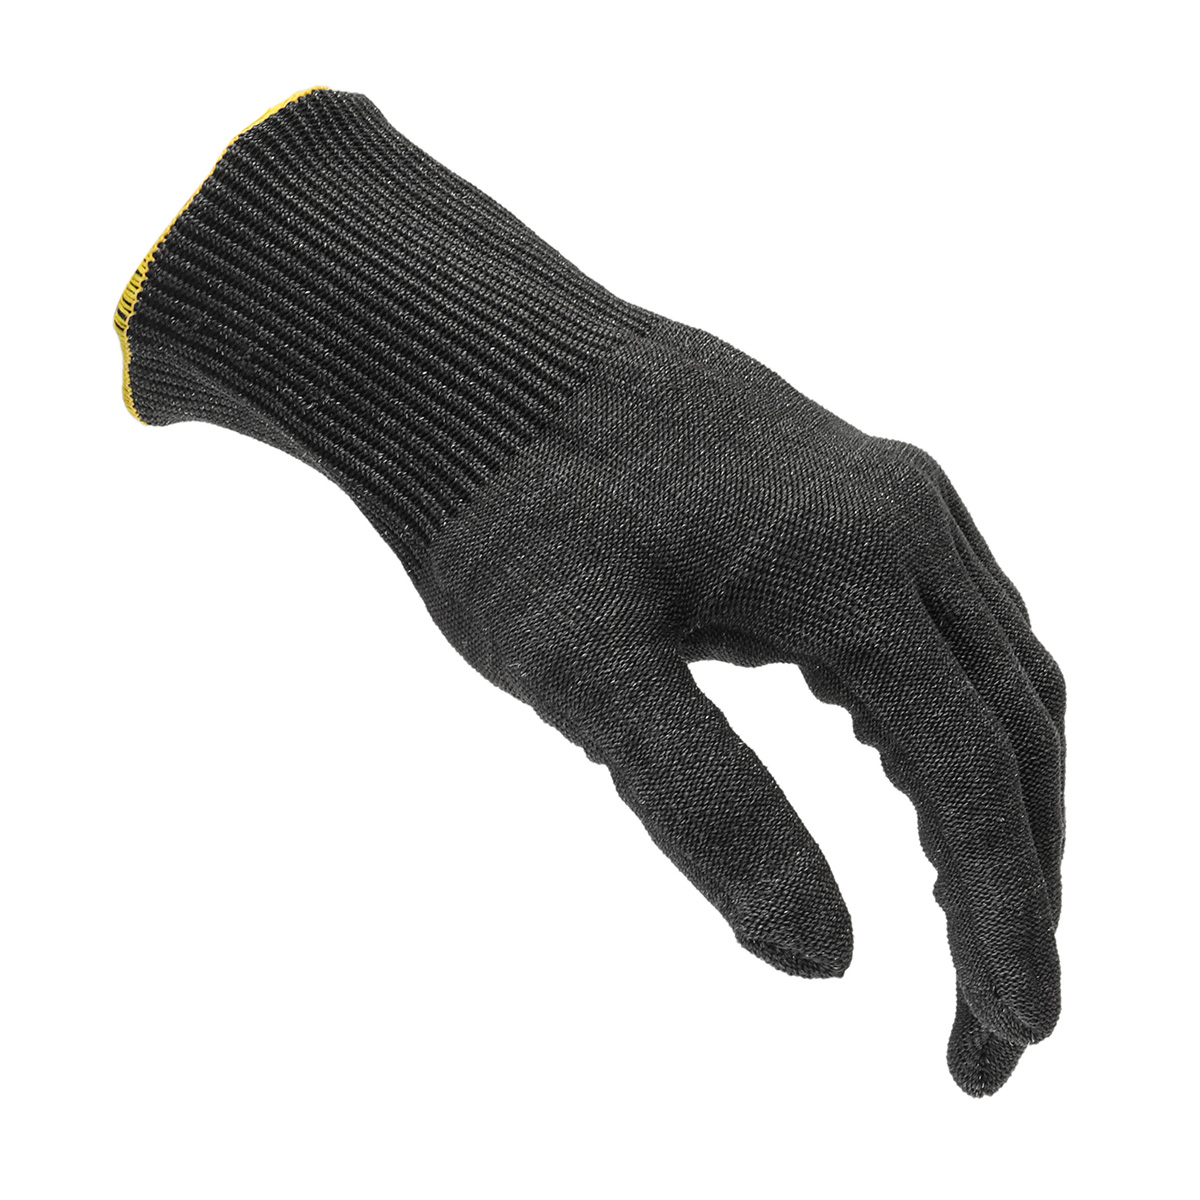 Stainless Steel Wire Safety Work Gloves Metal Mesh Anti Knife Cut Stab Resistant